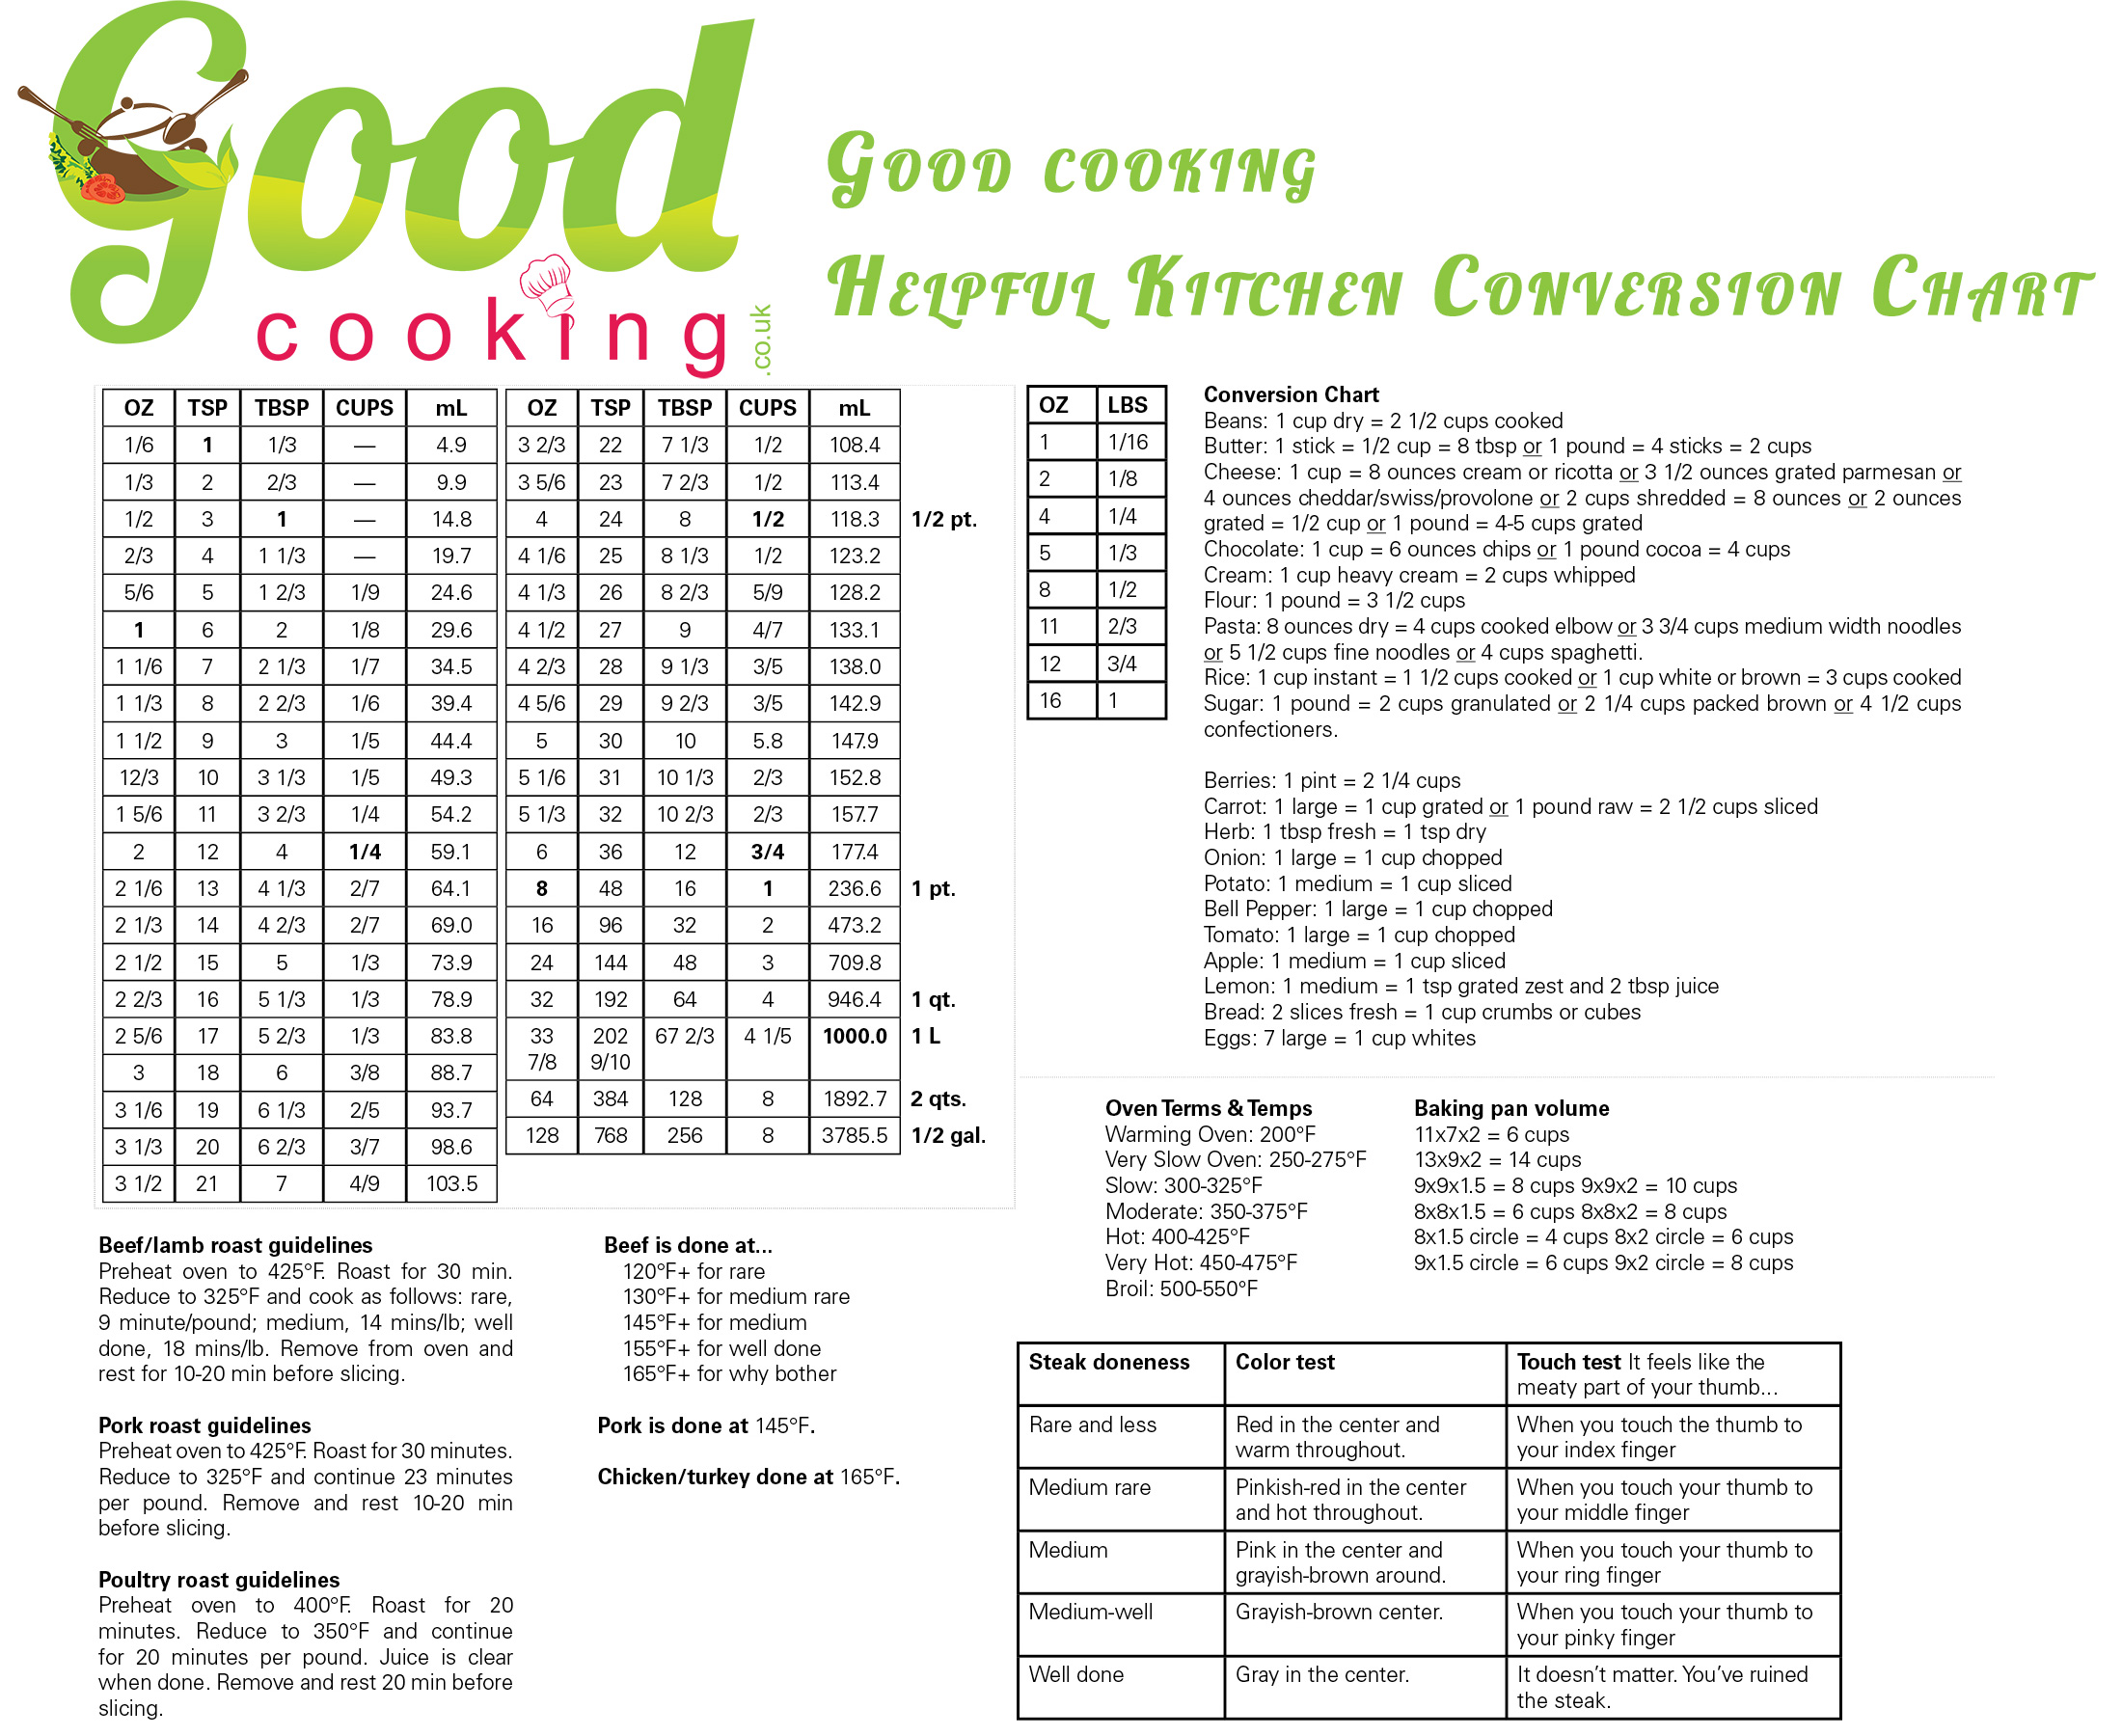 Beautiful Cooking Conversion Chart Ideas - Office Resume Sample ...